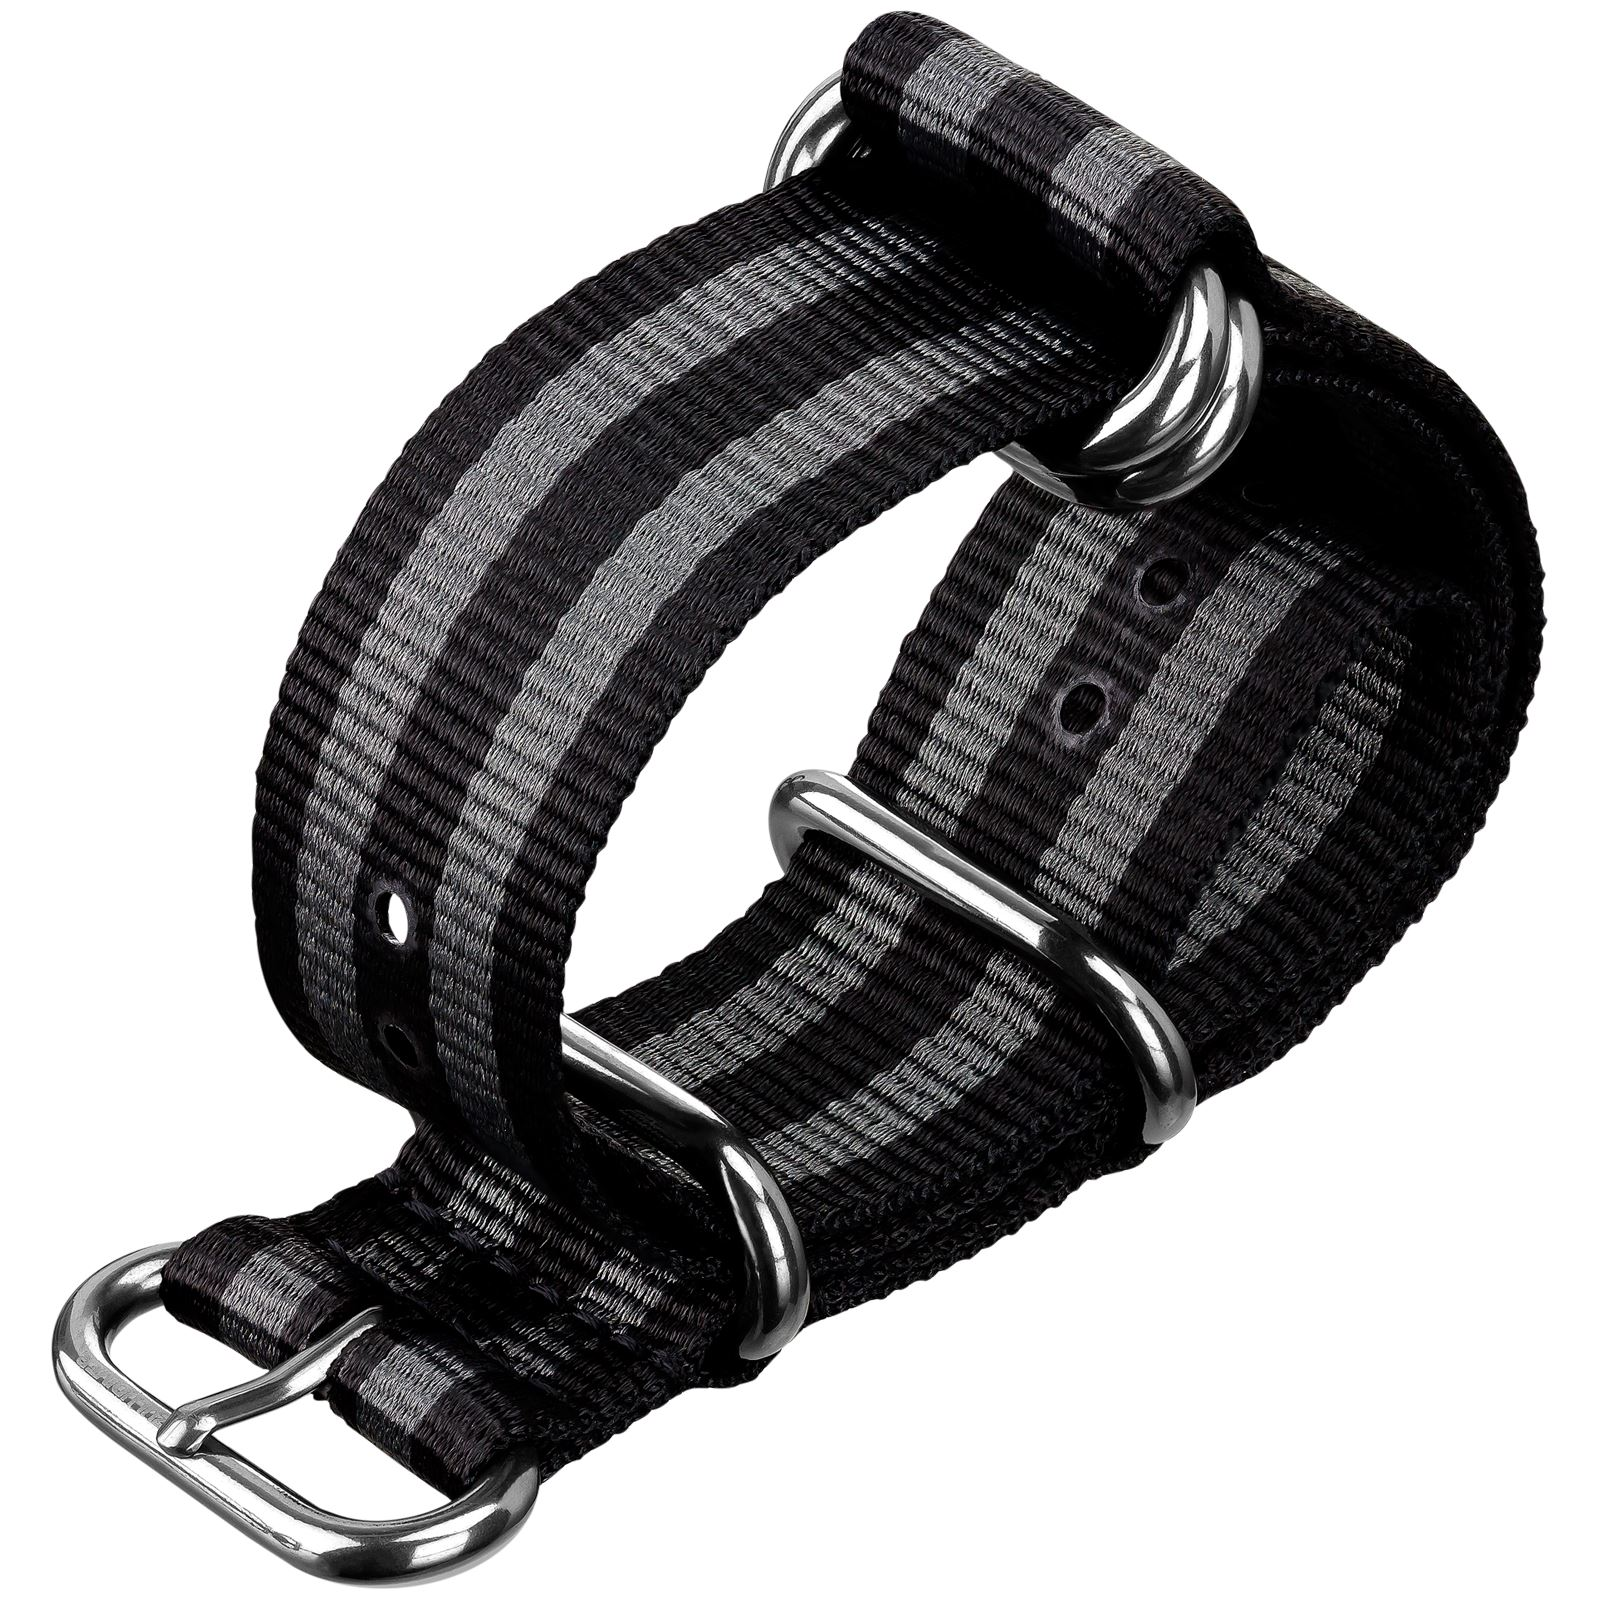 ZULU High Quality Heavy Duty Nylon Watch Strap Heavy Duty NATO by ZULUDIVER®